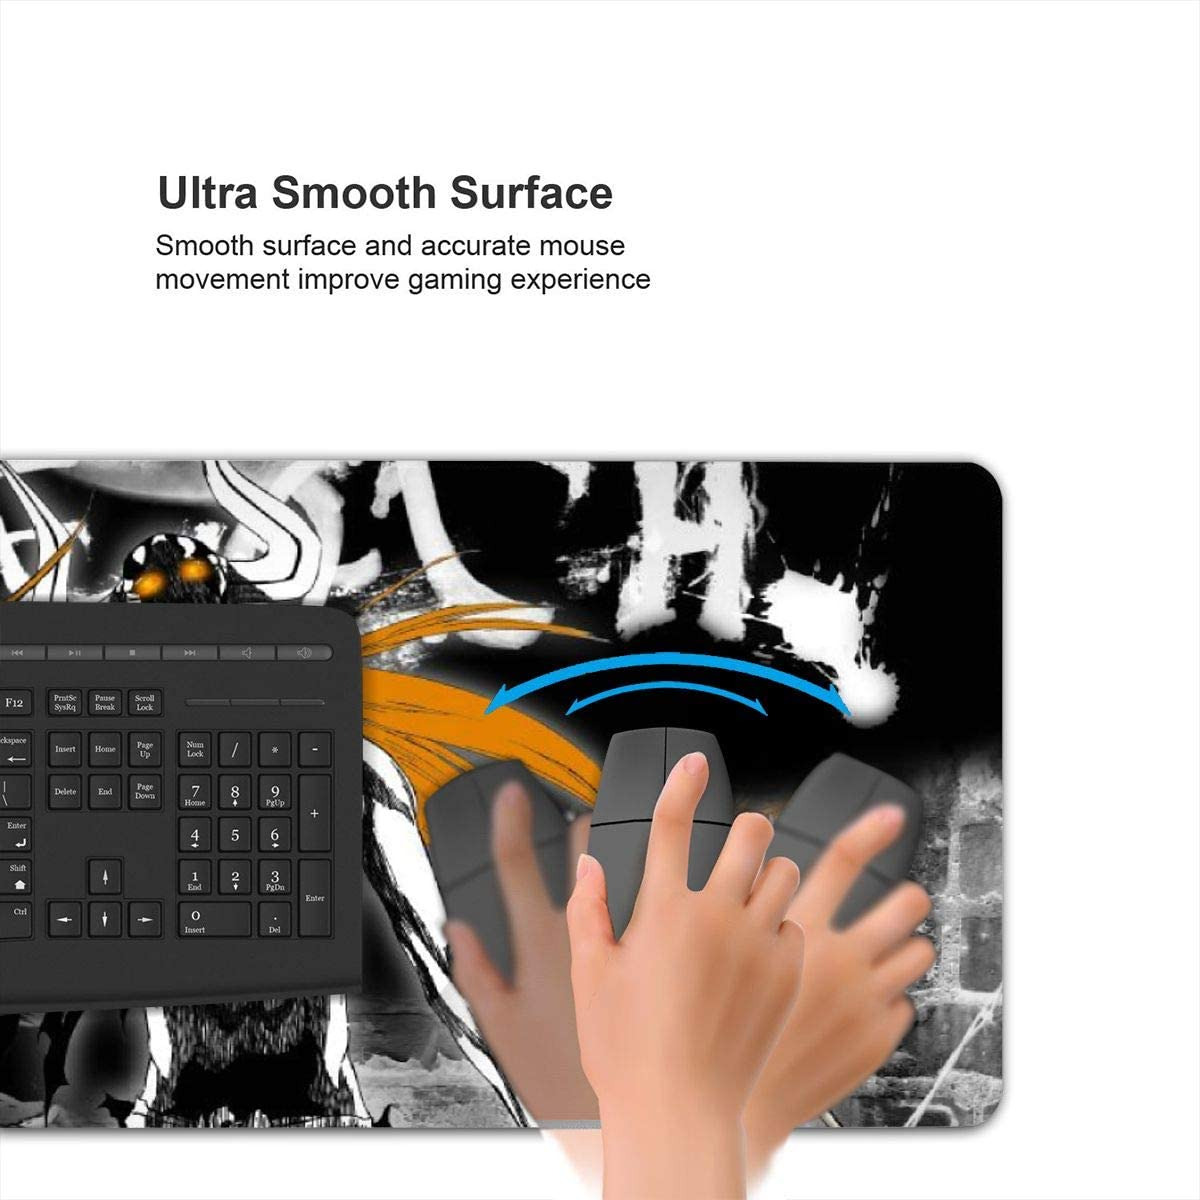 Bleach Anime Gaming Mouse Pad Extended Mouse Mat with Special-Textured Surface-Non-Slip Rubber Base-Water-Resistant and Durable Stitched Edges for Gaming Mouse and Keyboard 15.8x35.5 in